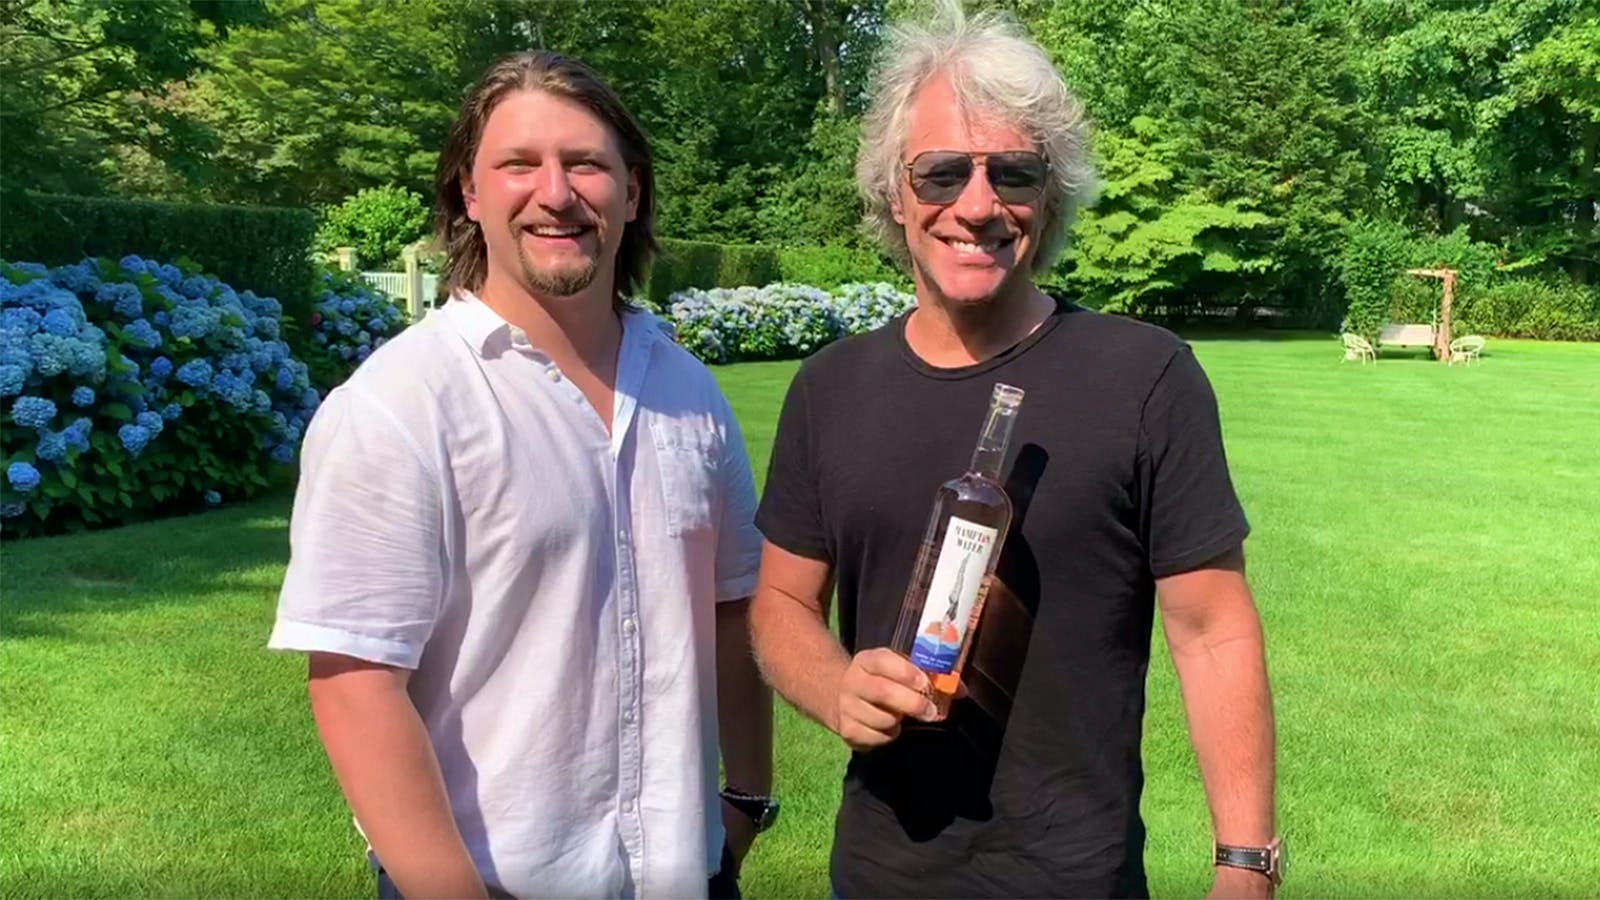 Jon Bon Jovi Is Playing at Your House to Raise COVID Relief Money with His Rosé